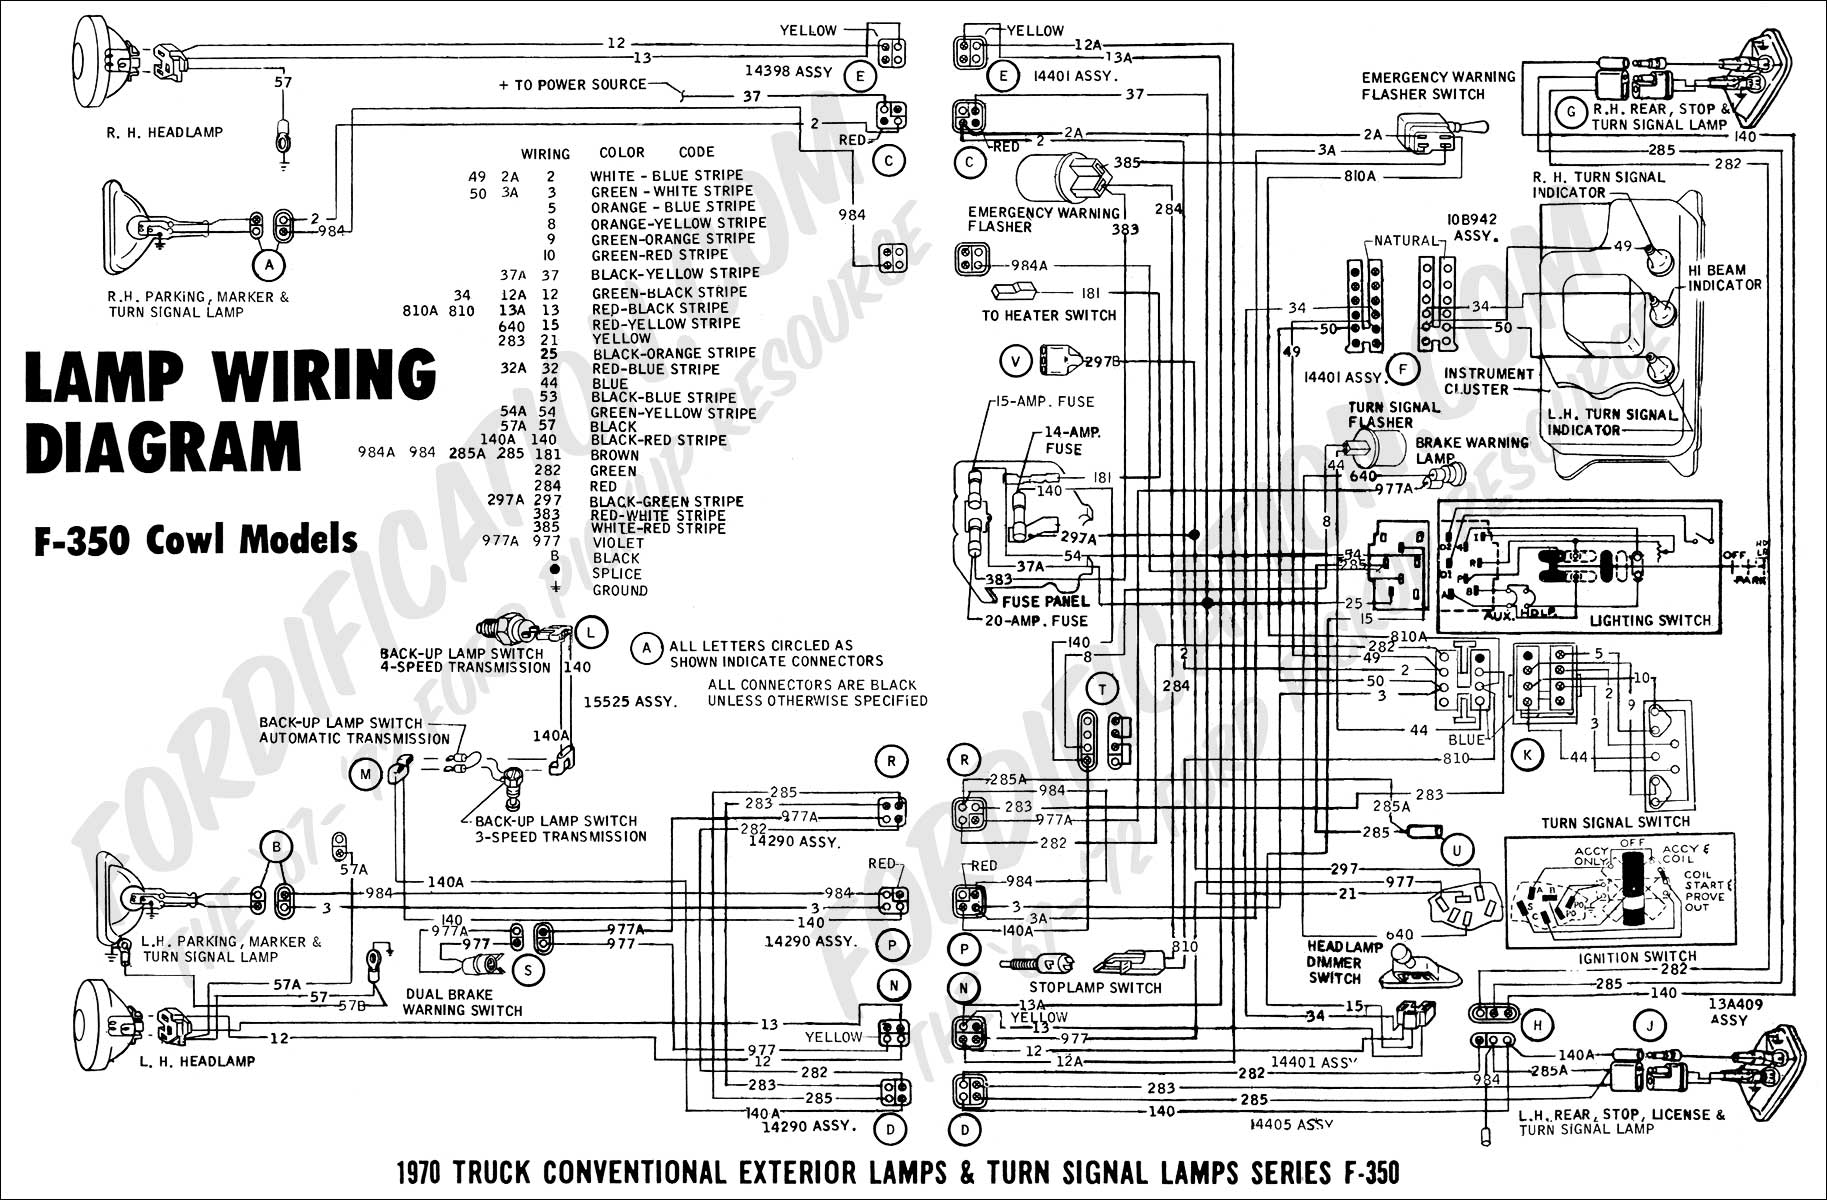 Tail Light Wiring Diagram For 95 Ford F 250 Product Diagrams Wire 2002 Toyota Matrix Truck Technical Drawings And Schematics Section H Rh Fordification Com Gmc Canyon